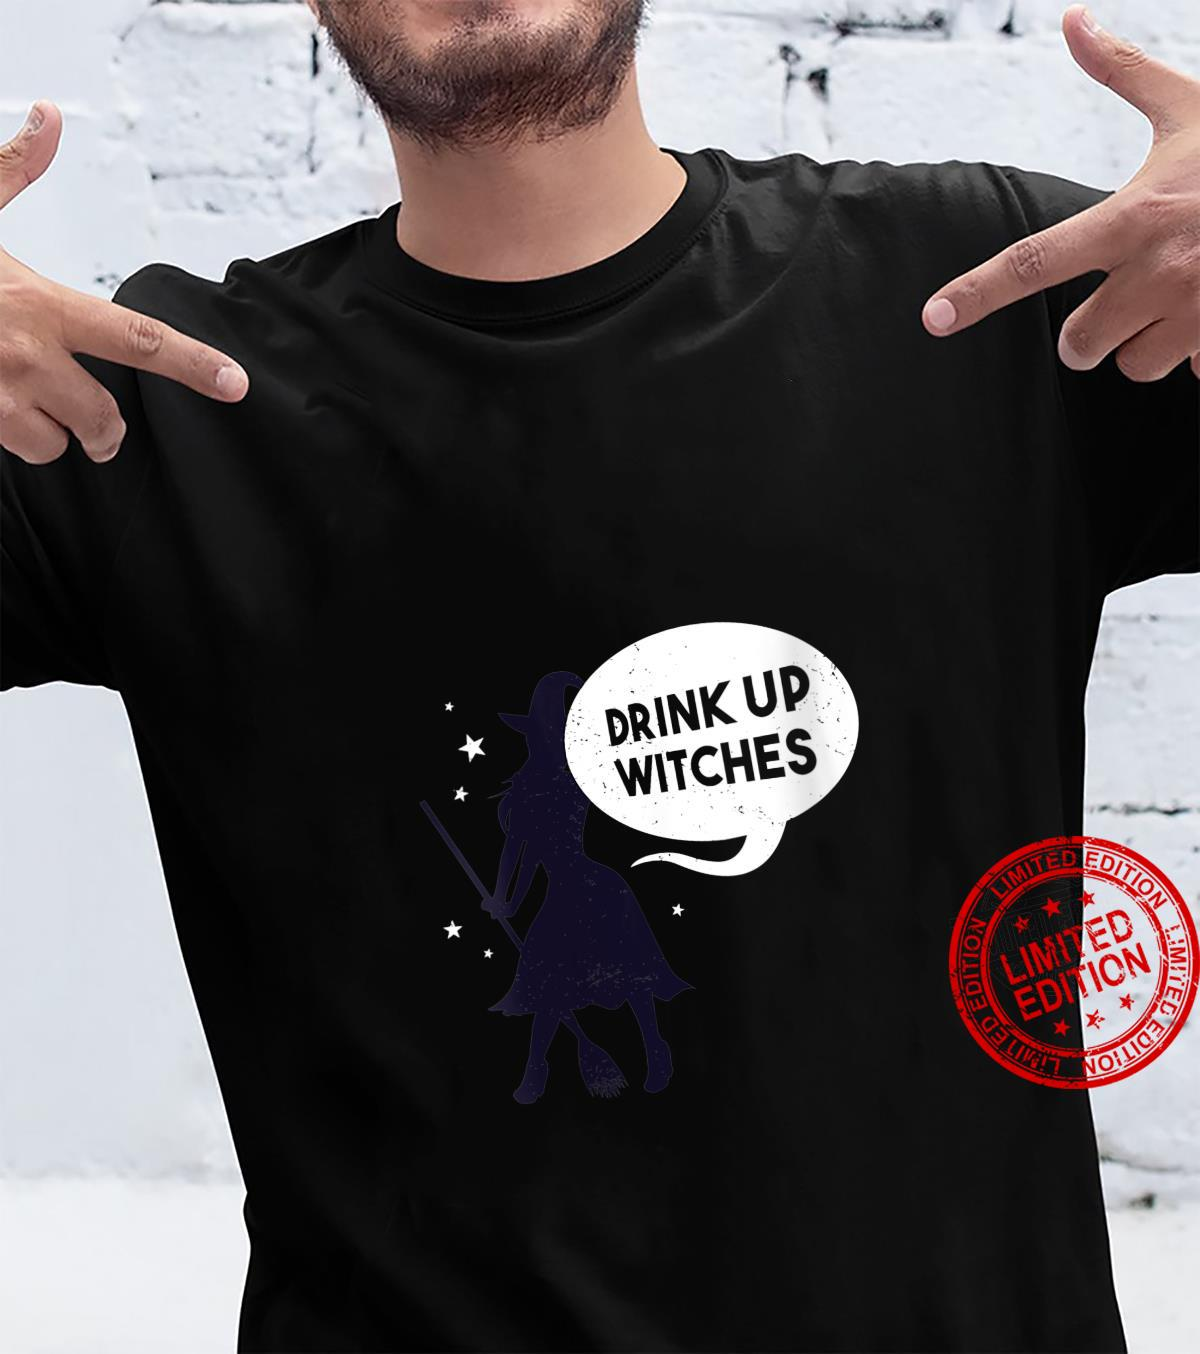 Drink Up Witches Funny Halloween Drinking Shirt